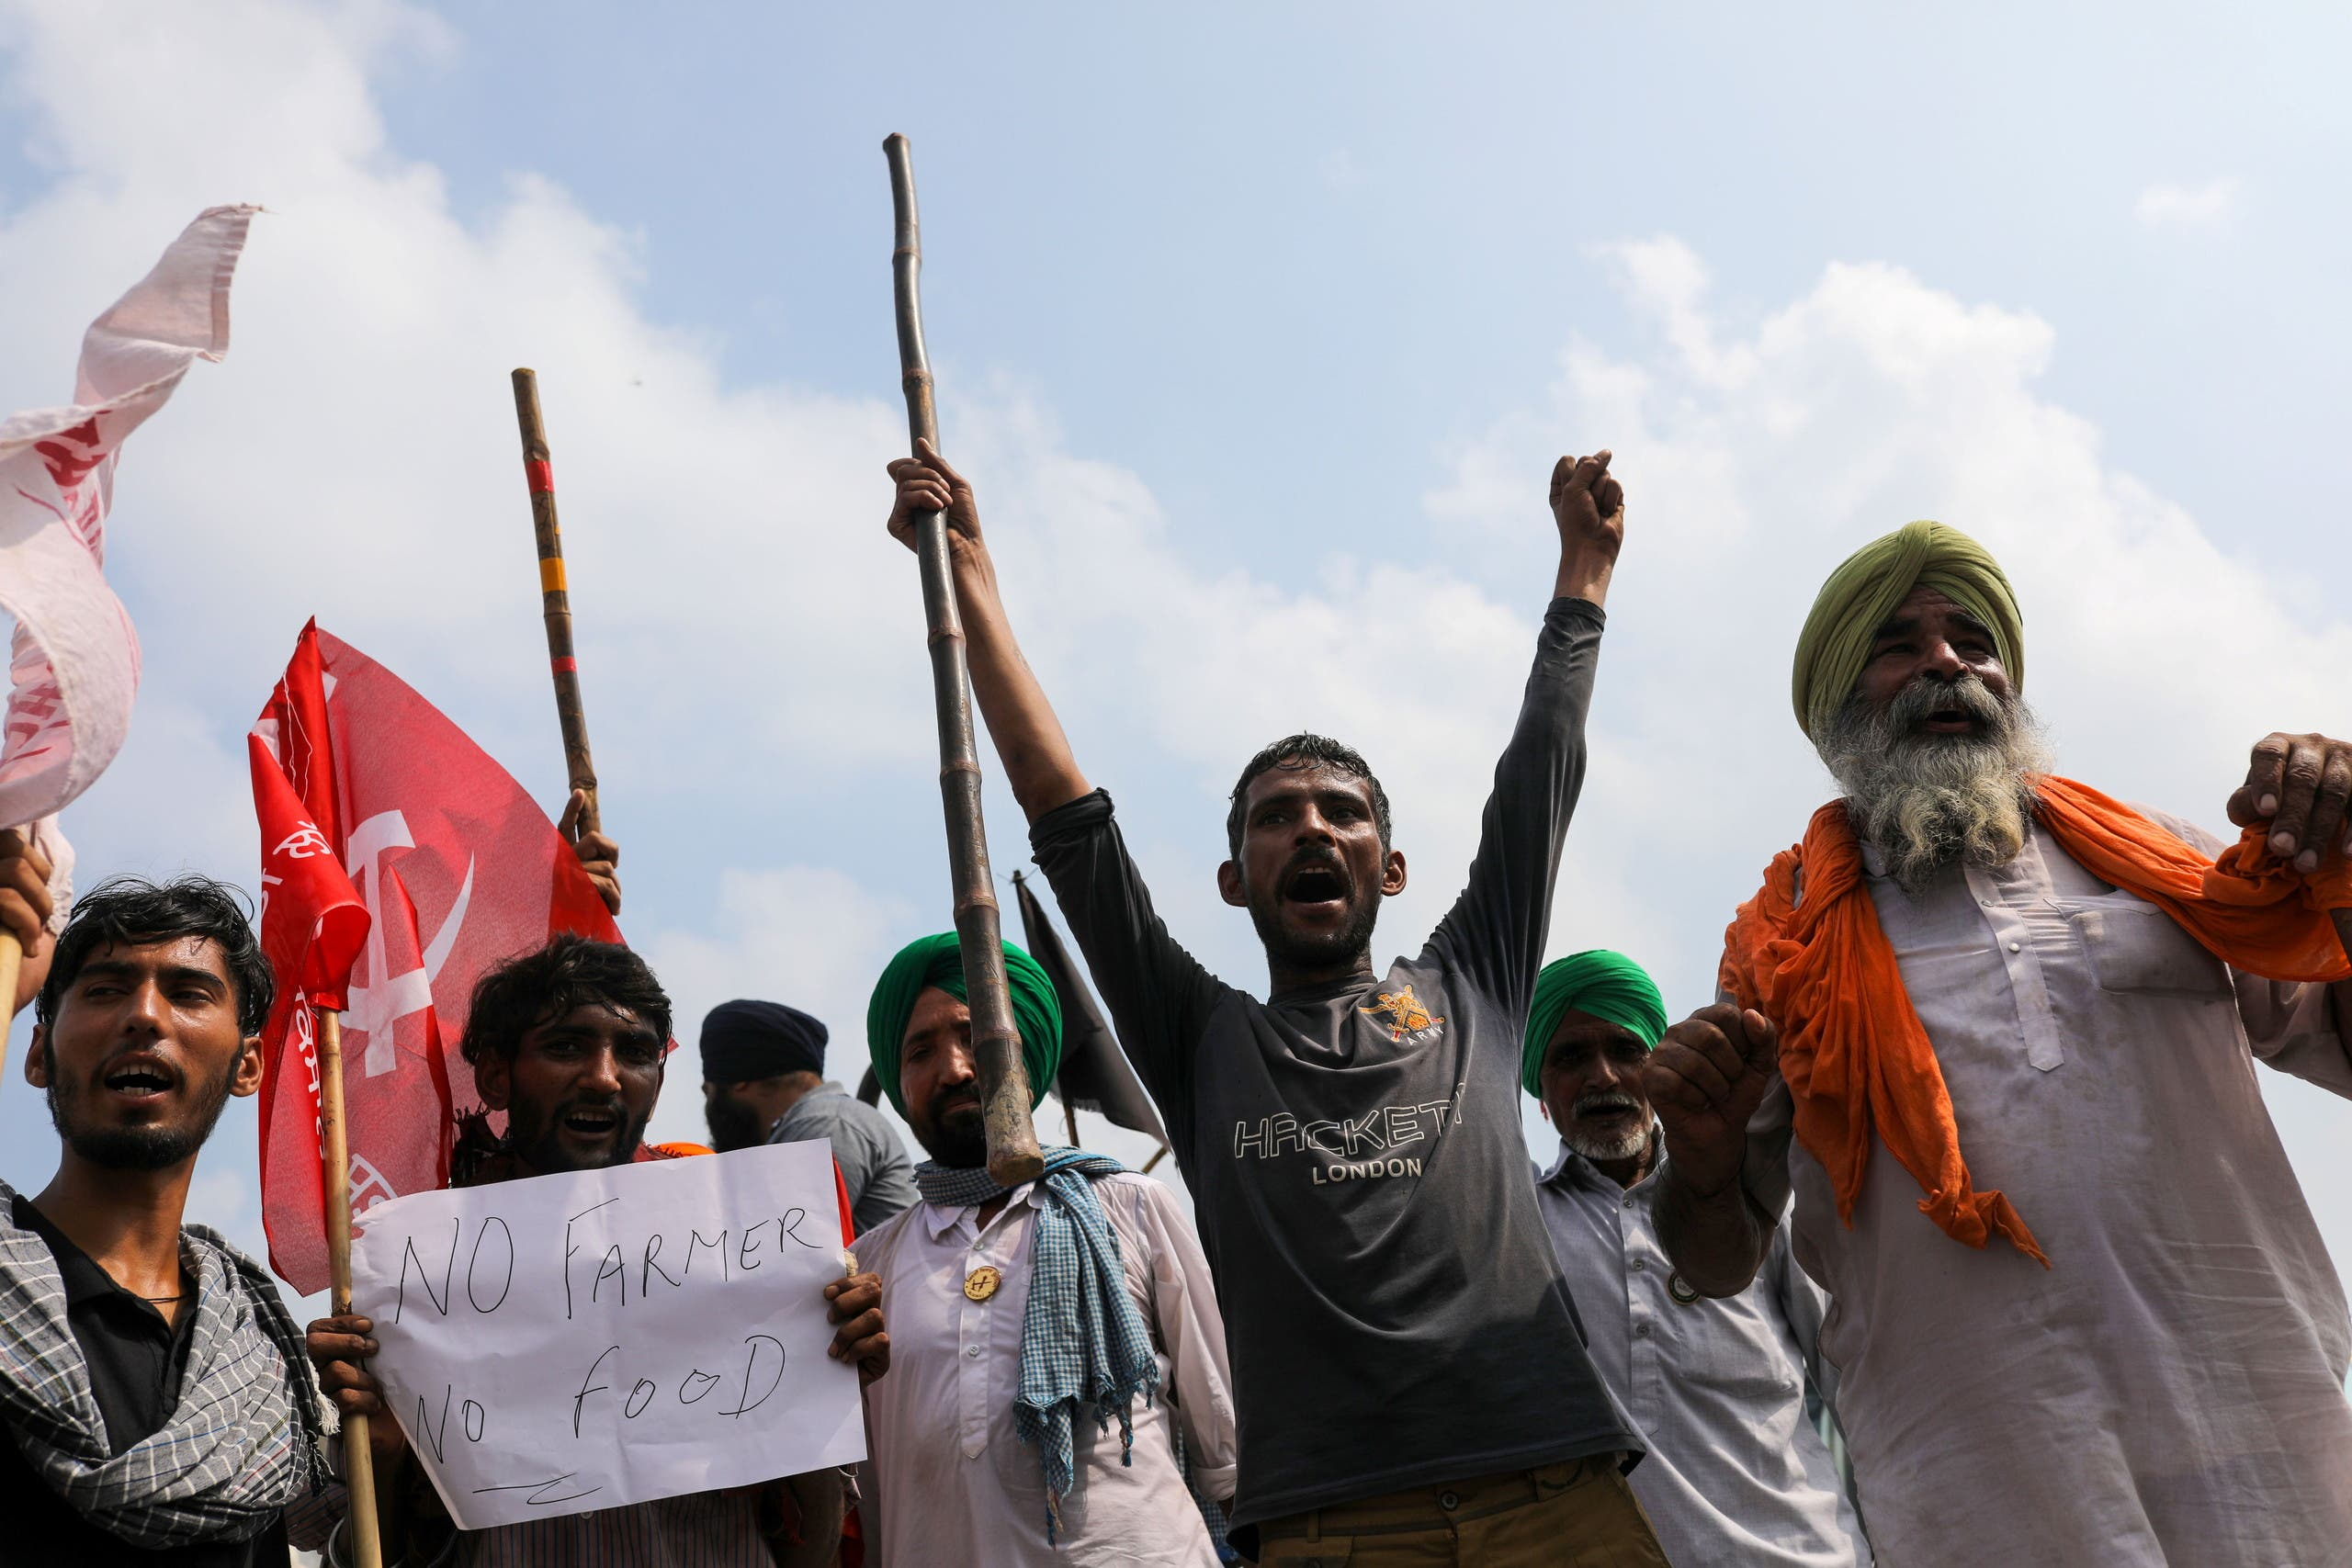 Farmers block railway tracks as part of protests against farm laws during nationwide protests, in Sonipat, northern state of Haryana, India, September 27, 2021. REUTERS/Anushree Fadnavi